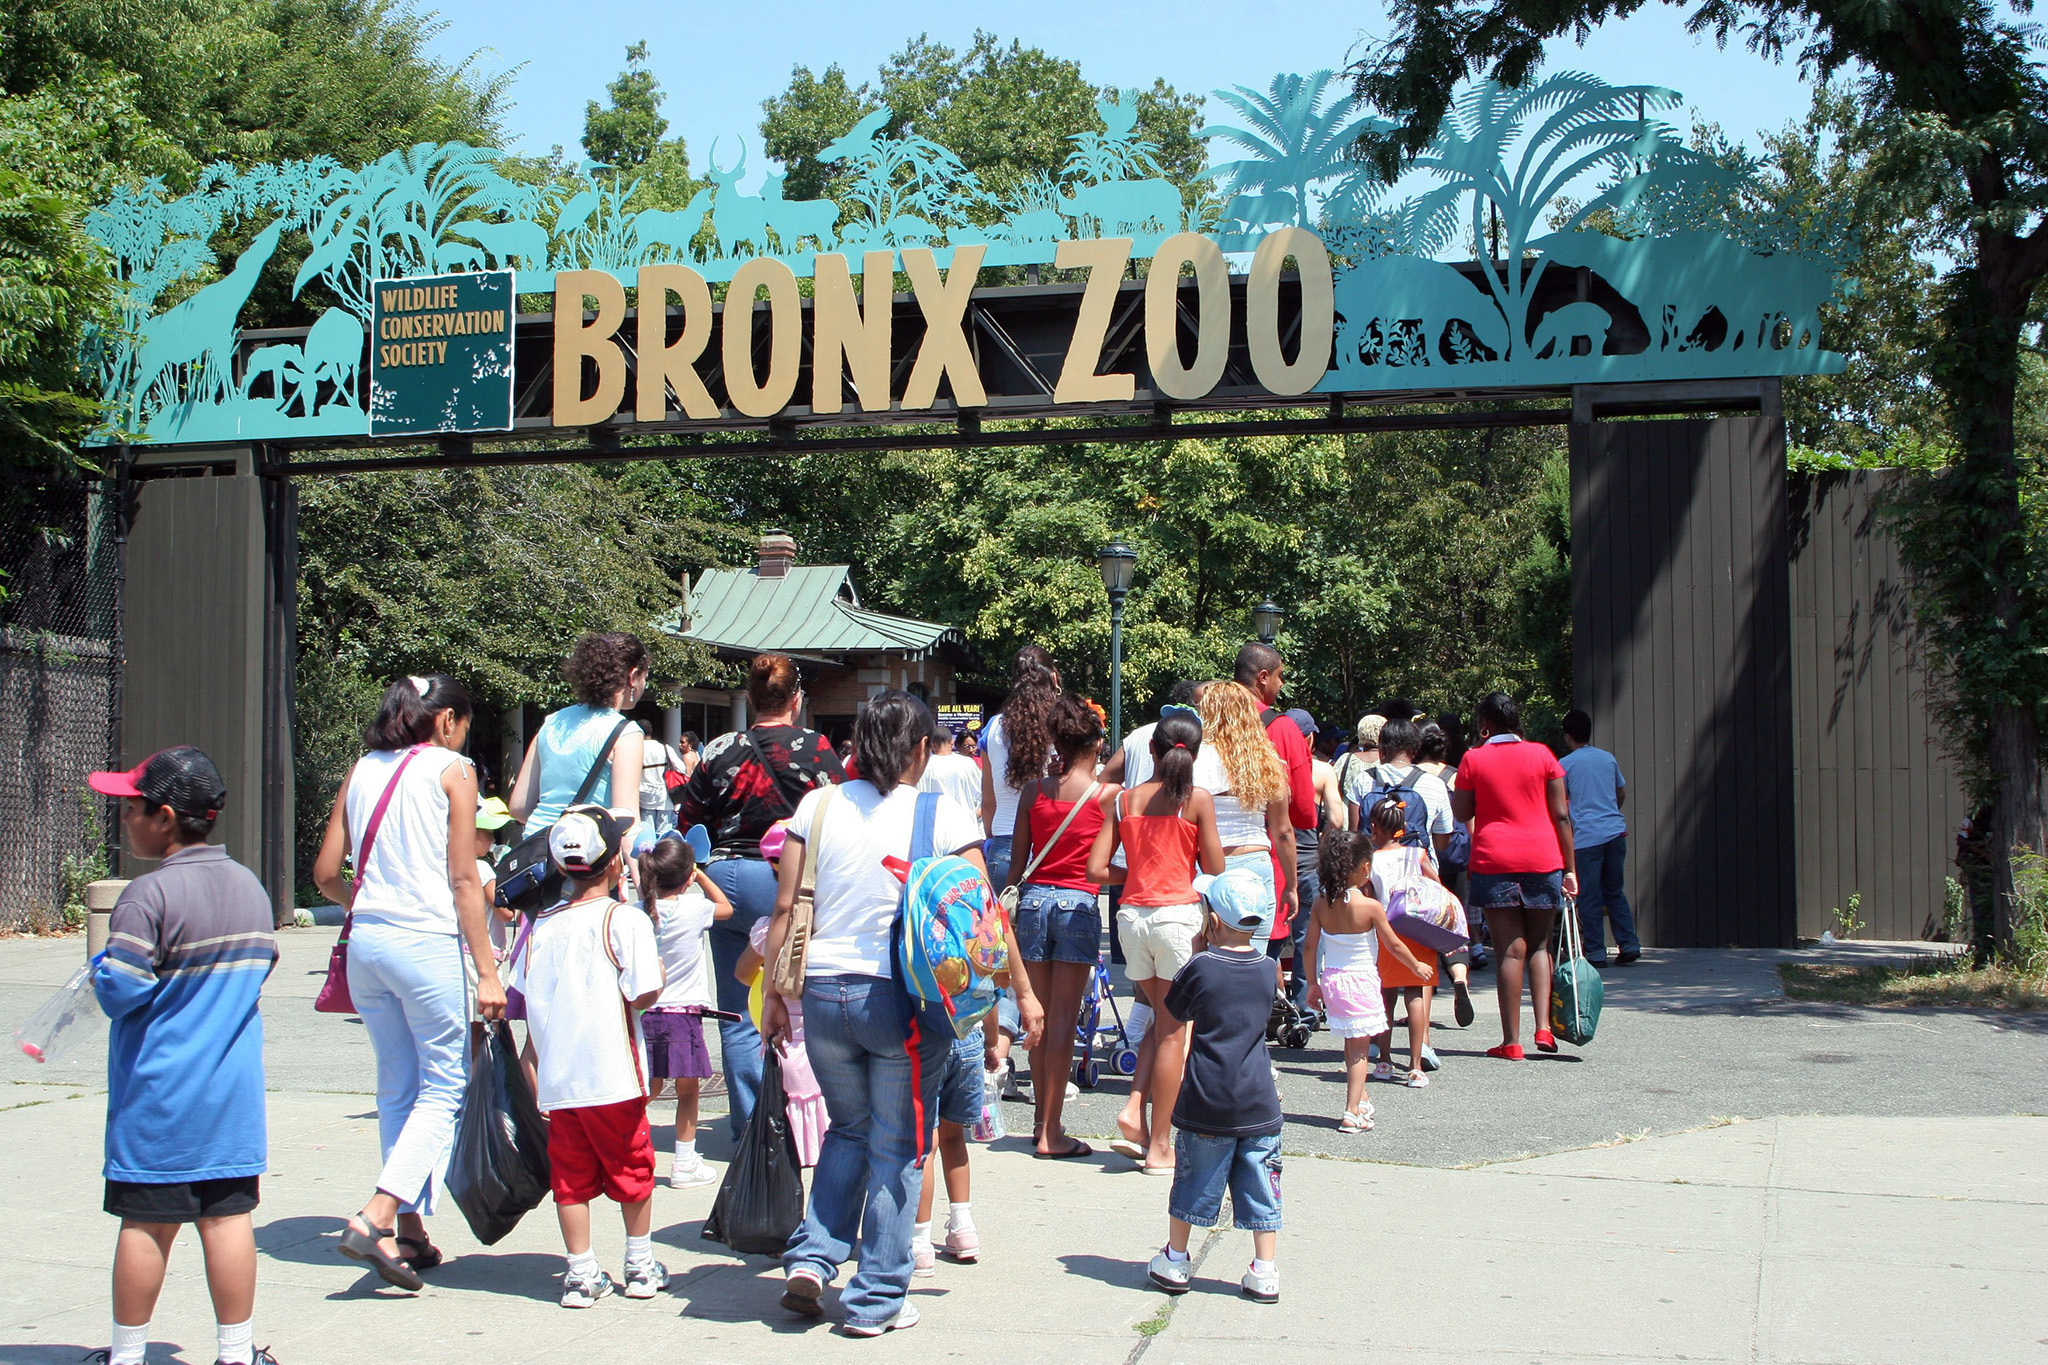 Bronx Zoo Wildlife Conservation Society  Attractions in The Bronx ...